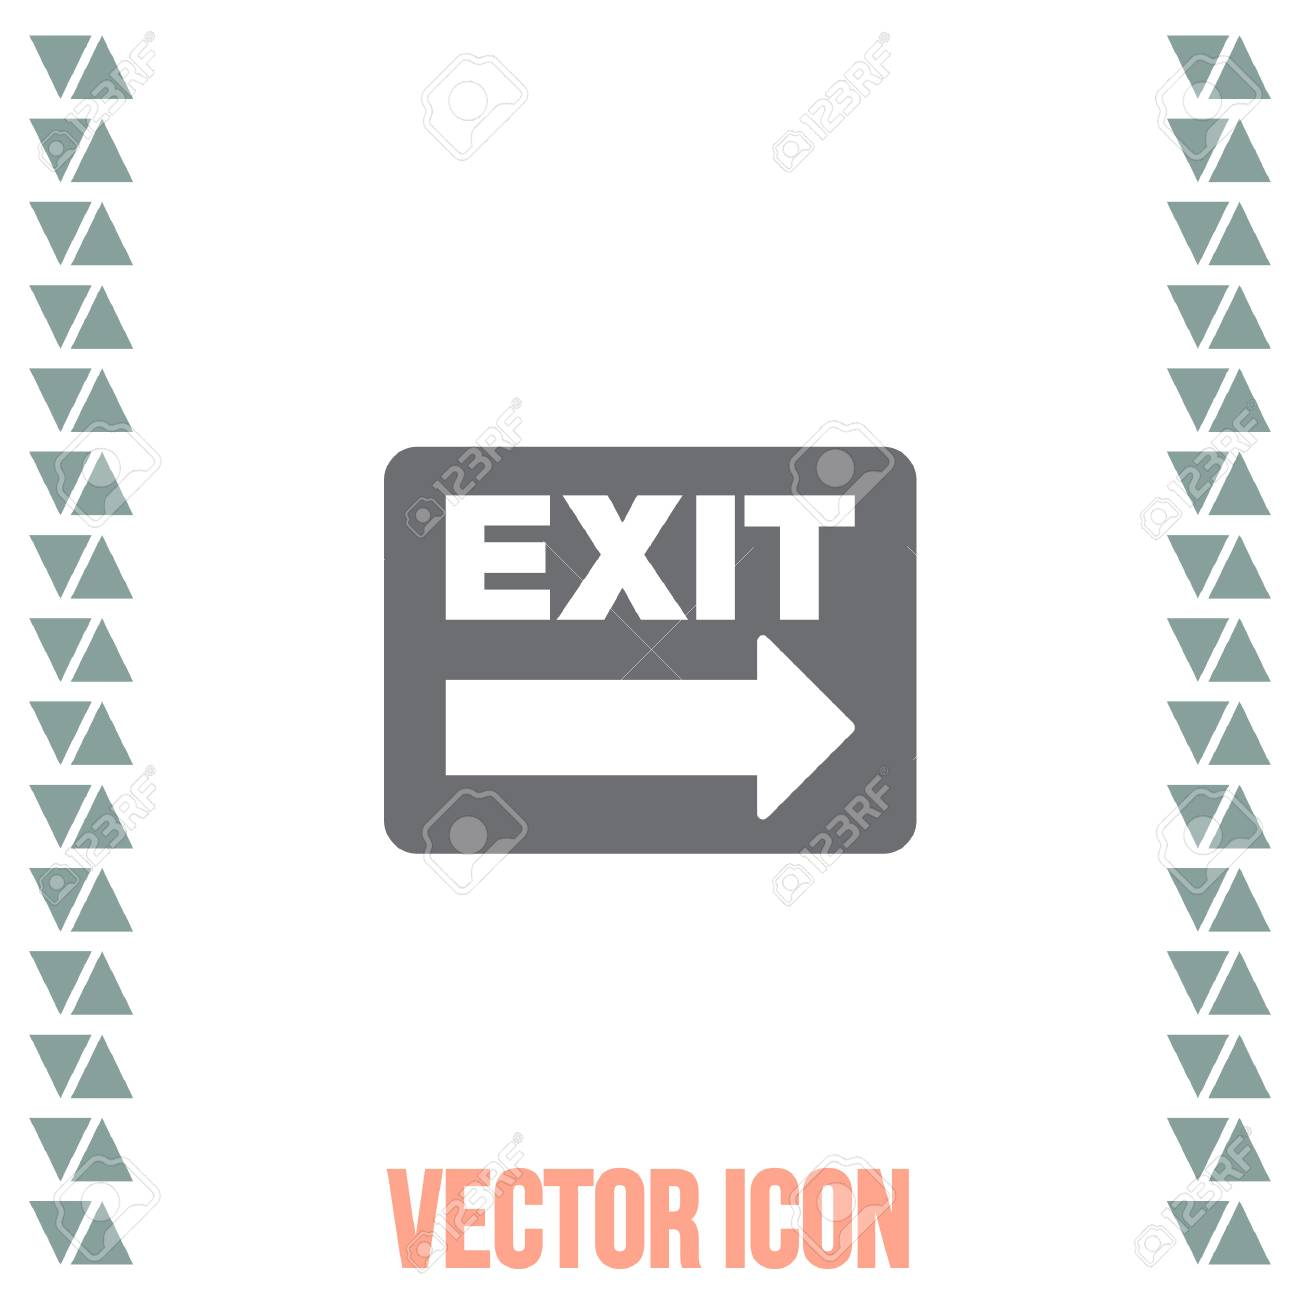 Exit sign vector icon festival sign gate symbol royalty free exit sign vector icon festival sign gate symbol stock vector 64701958 buycottarizona Images